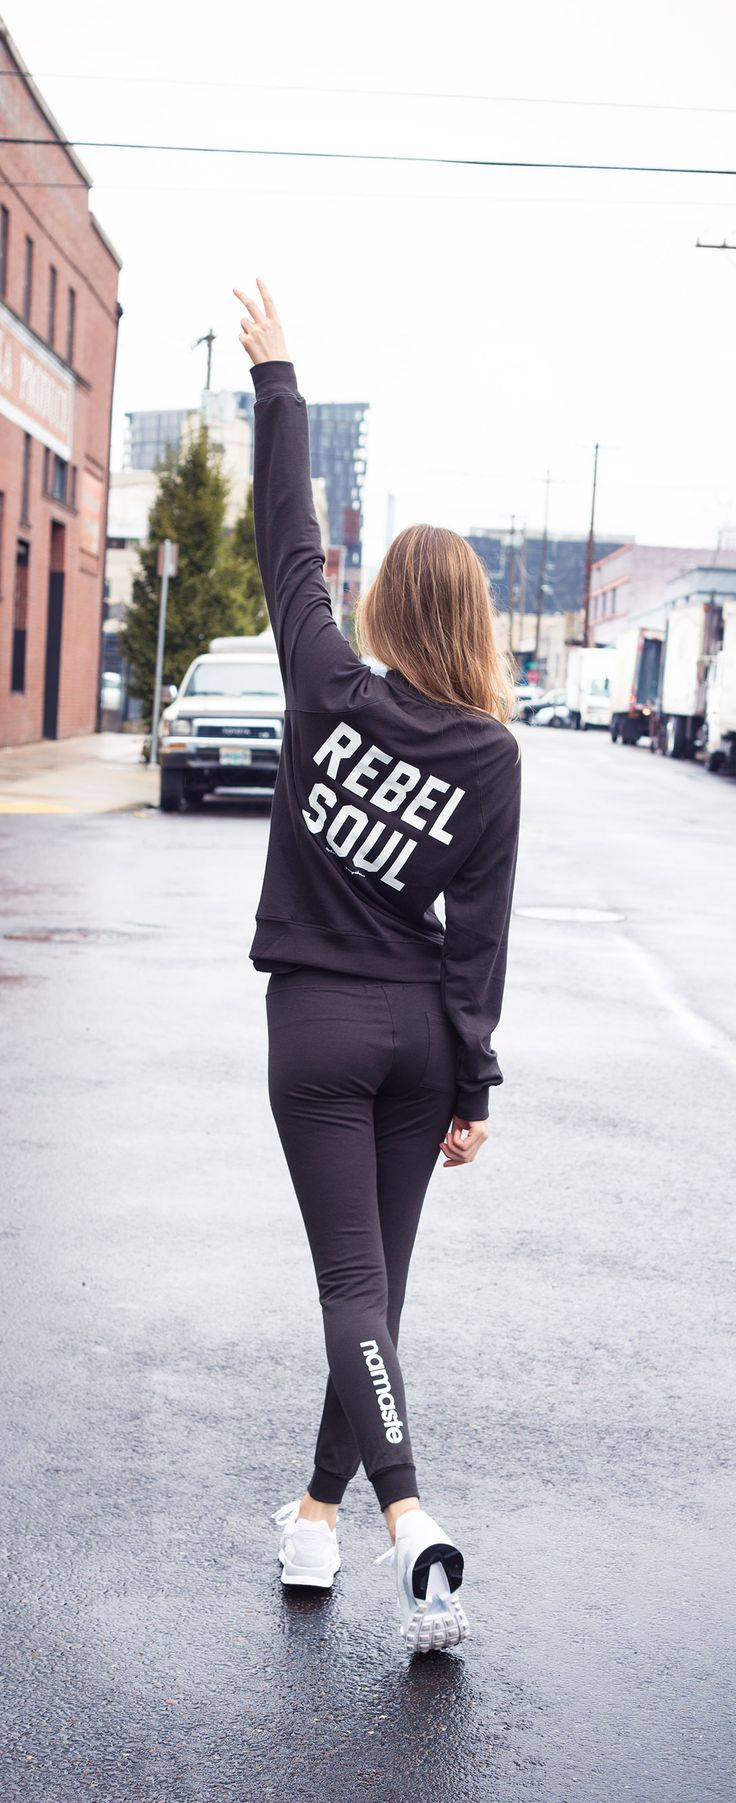 They said I couldn't so I did. Show your rebel side, shop the look at www.ev...